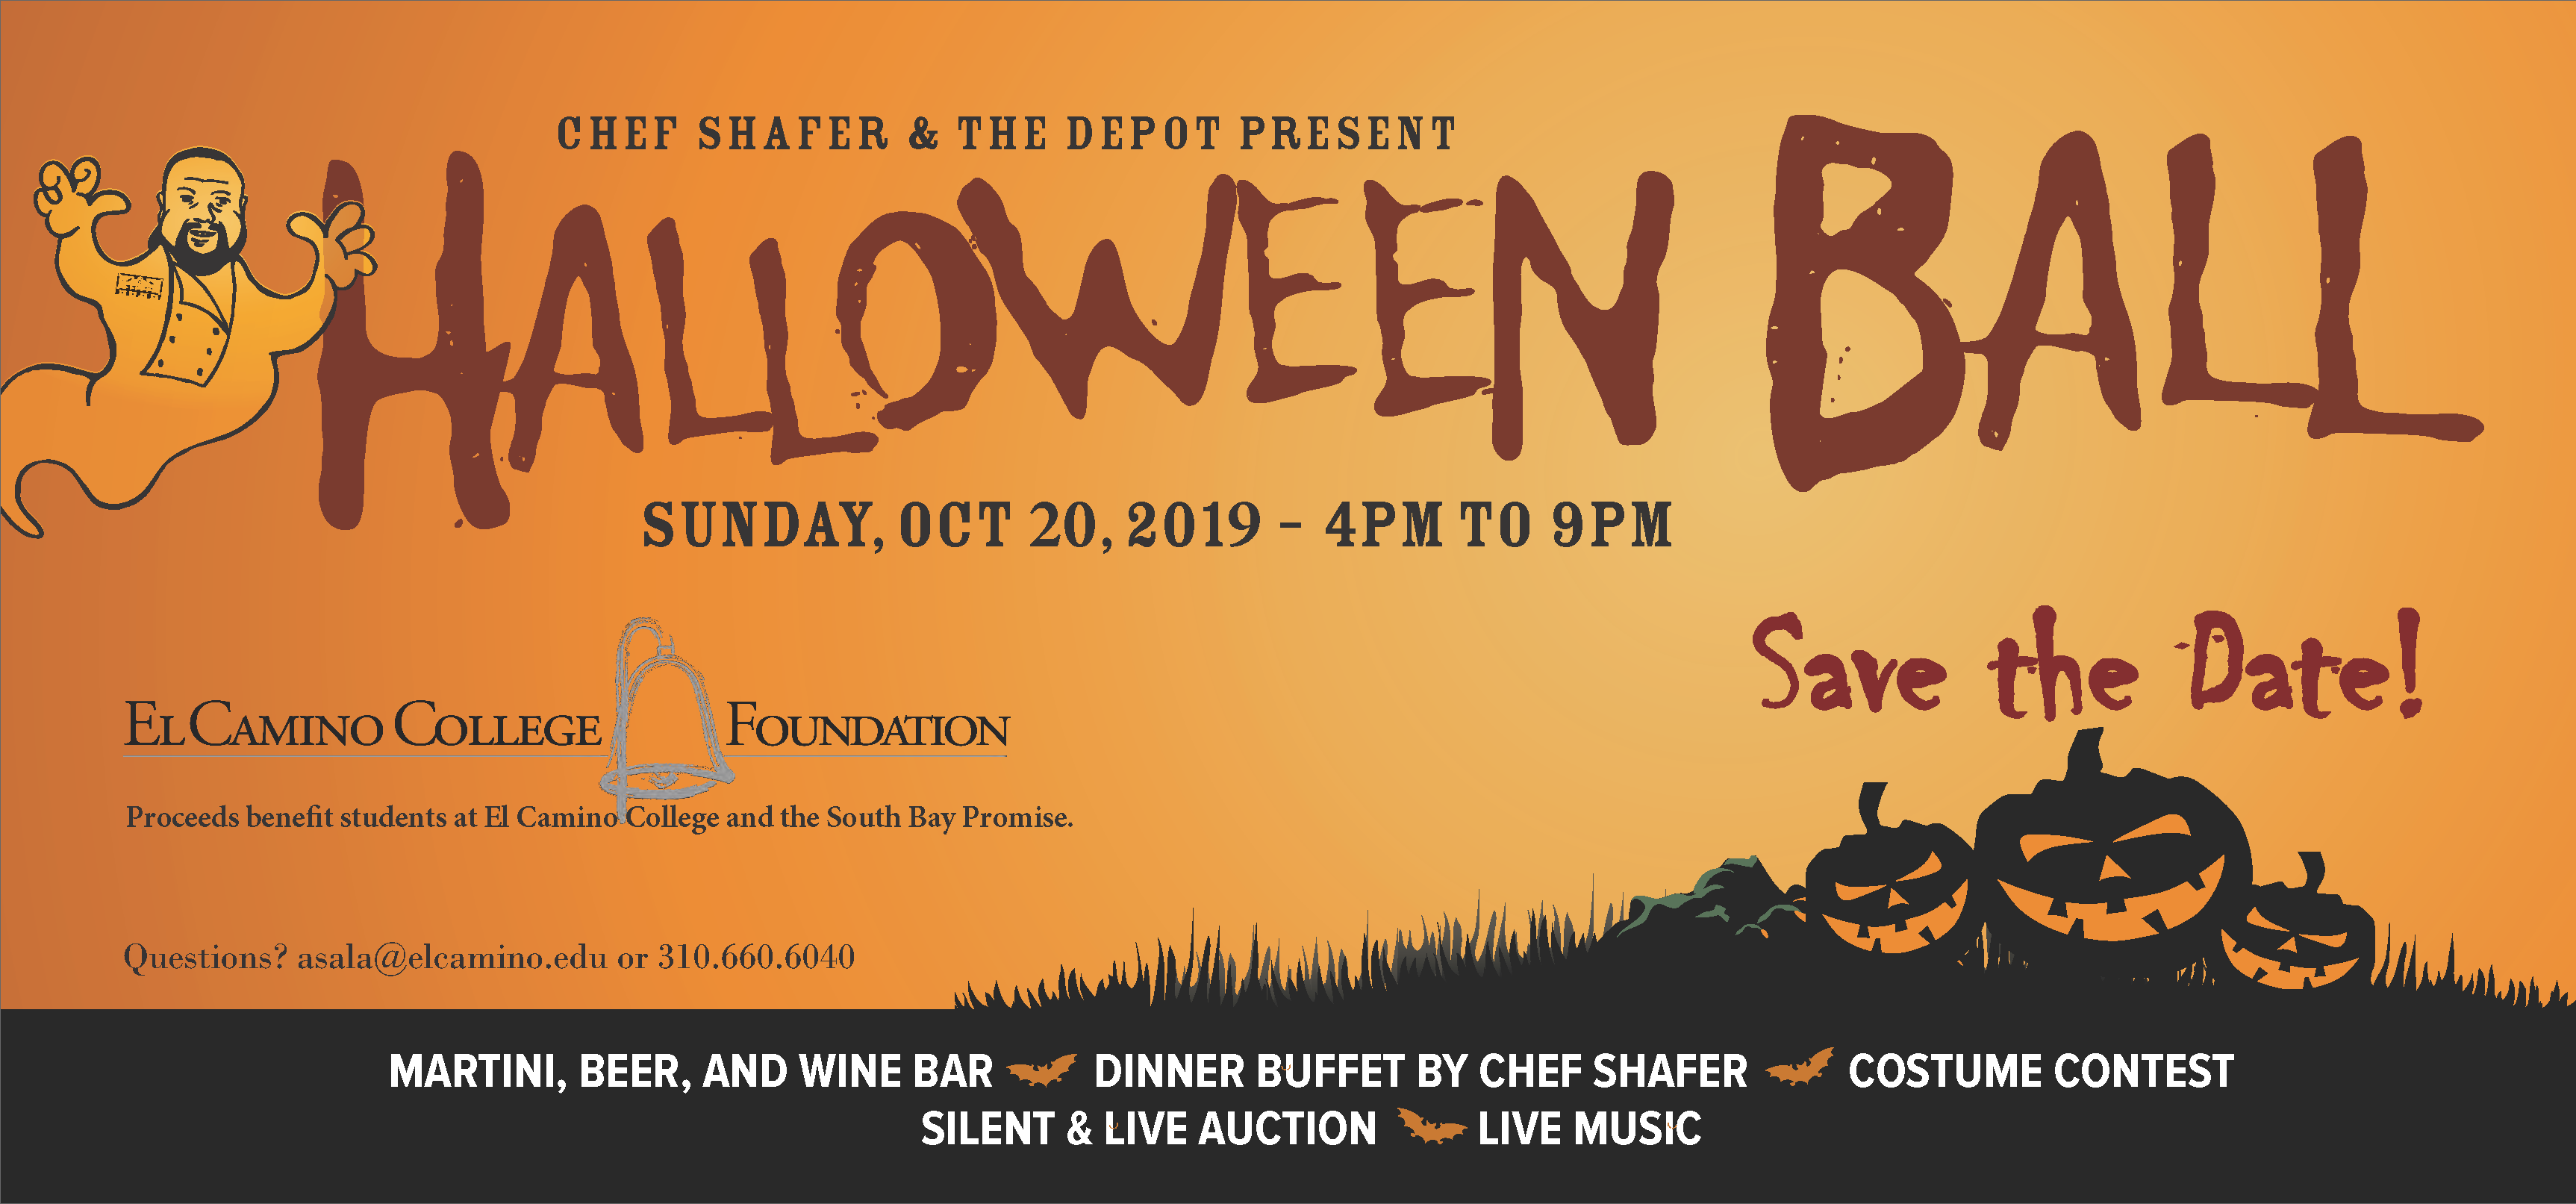 Halloween Ball Save the Date